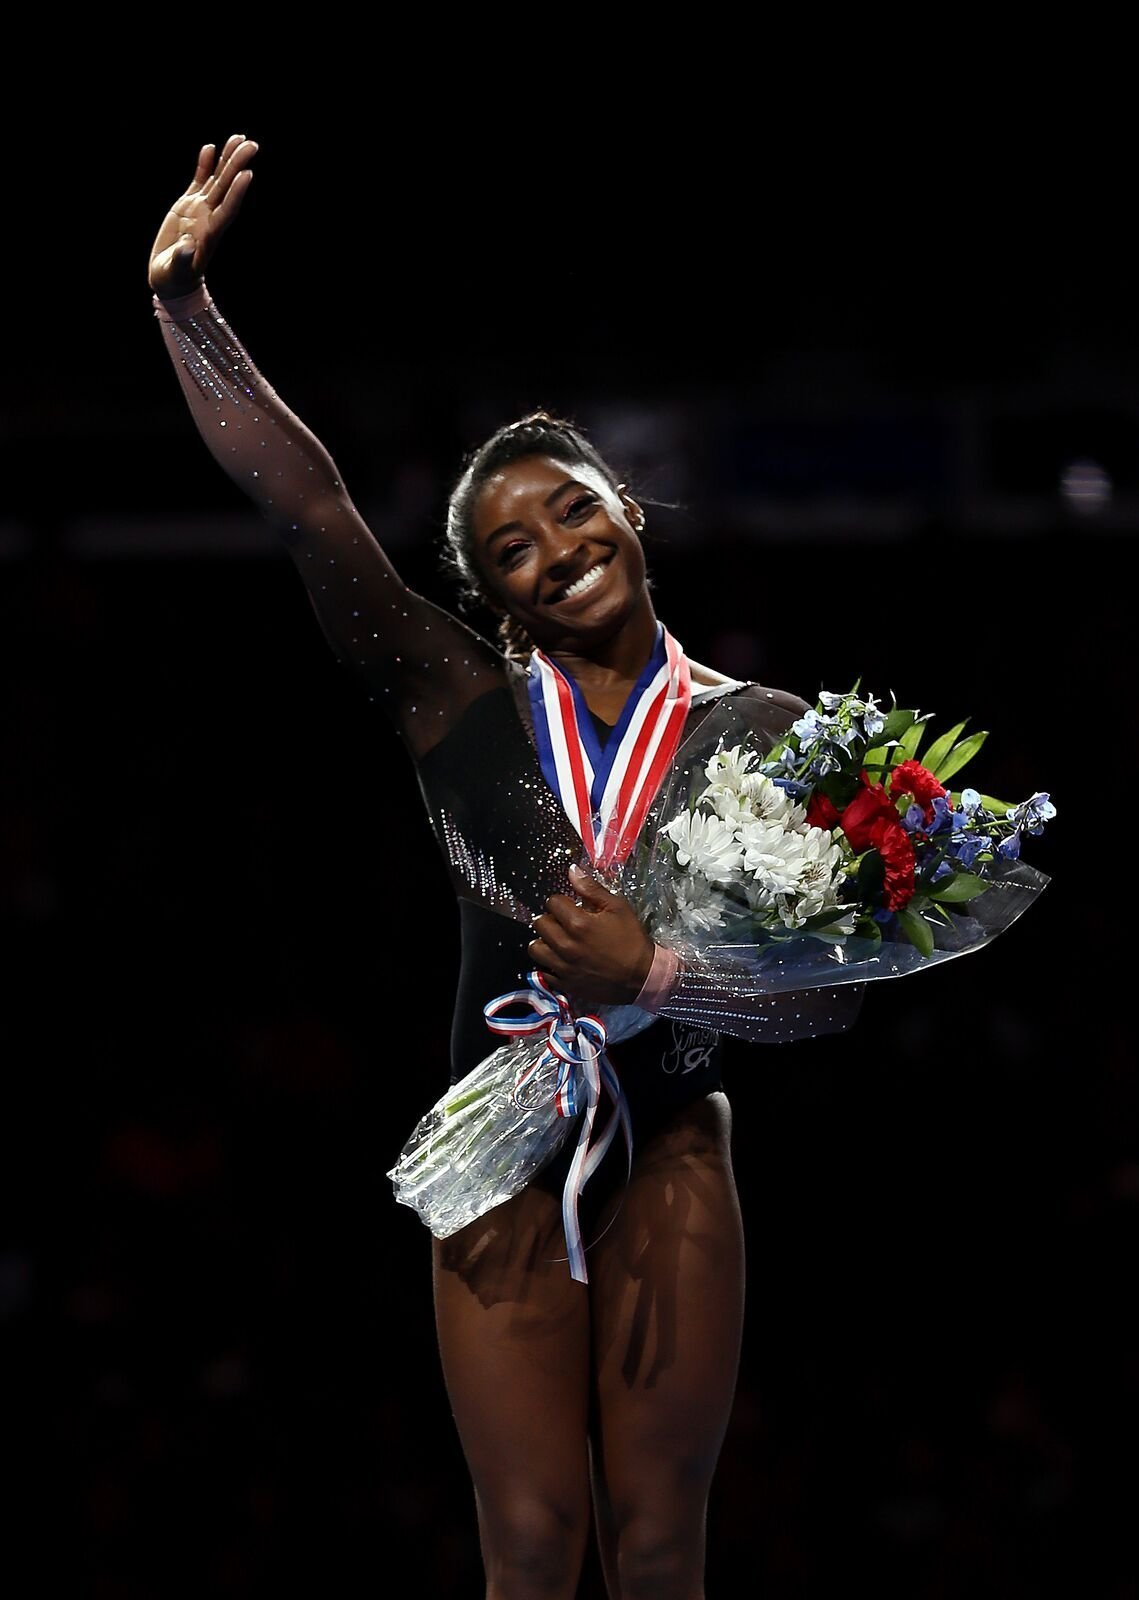 Simone Biles after winning the all-around gold medal during Women's Senior competition of the 2019 U.S. Gymnastics Championships. | Source: Getty Images